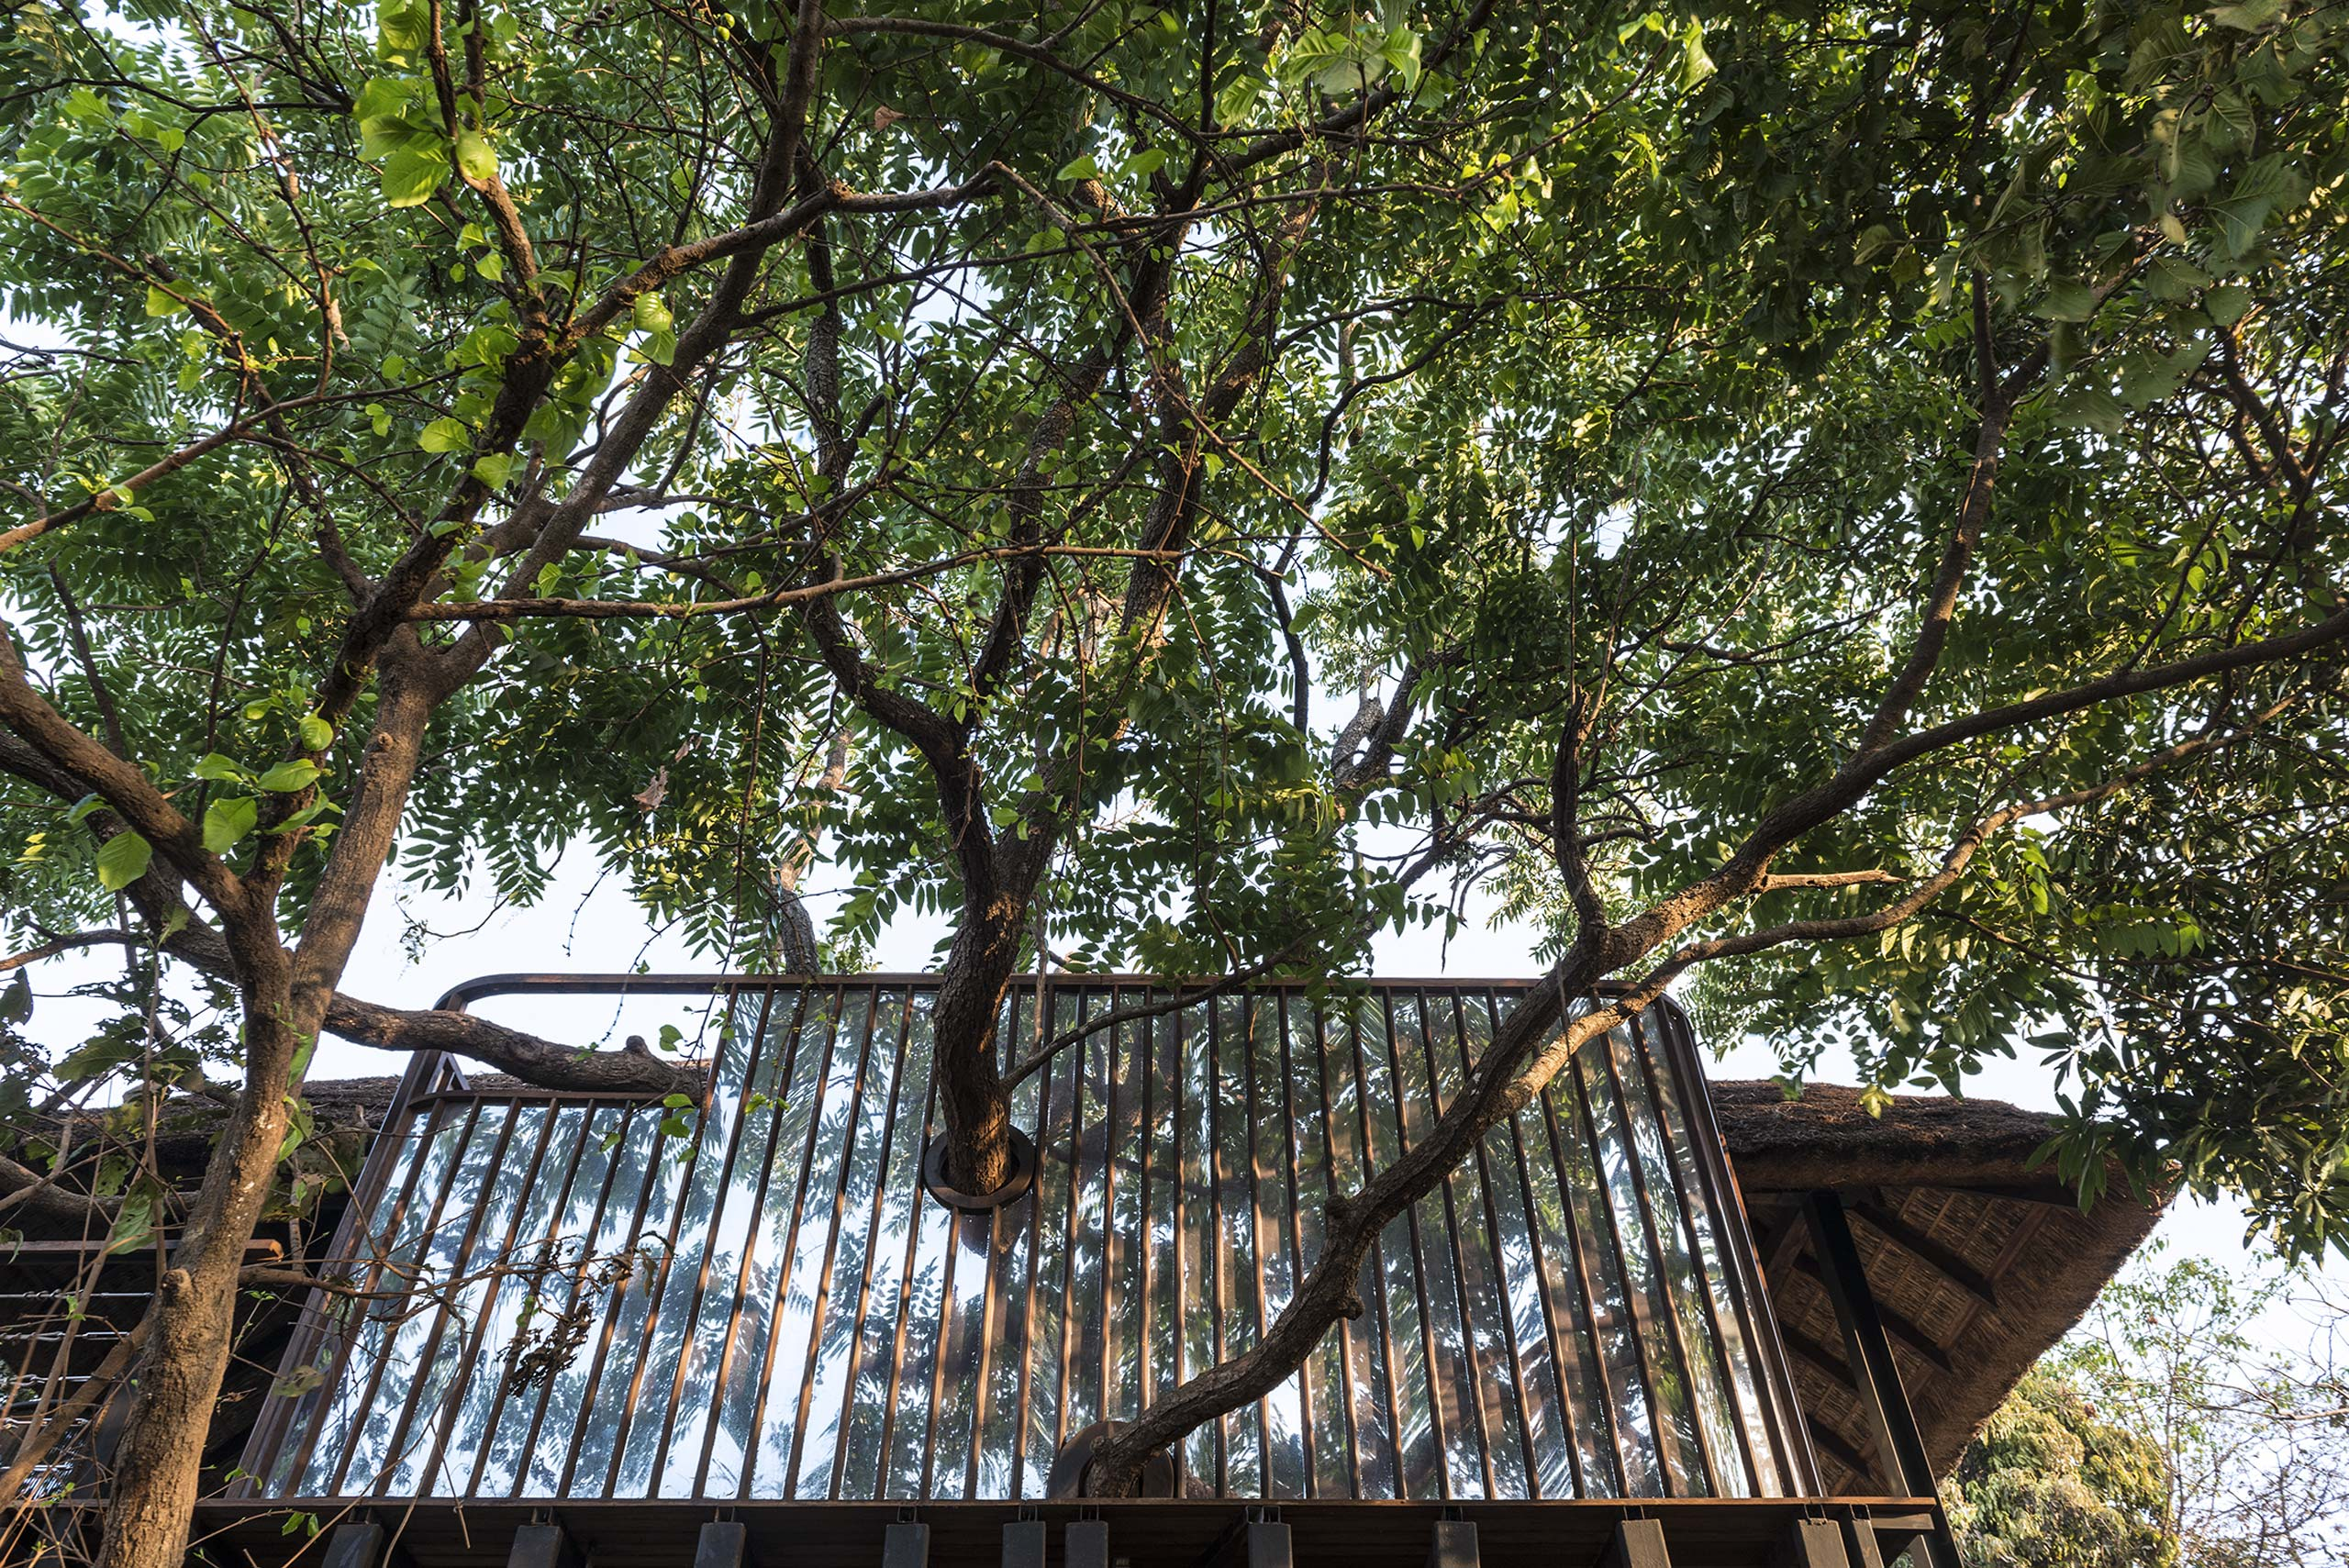 exterior view of trees piercing through tree house